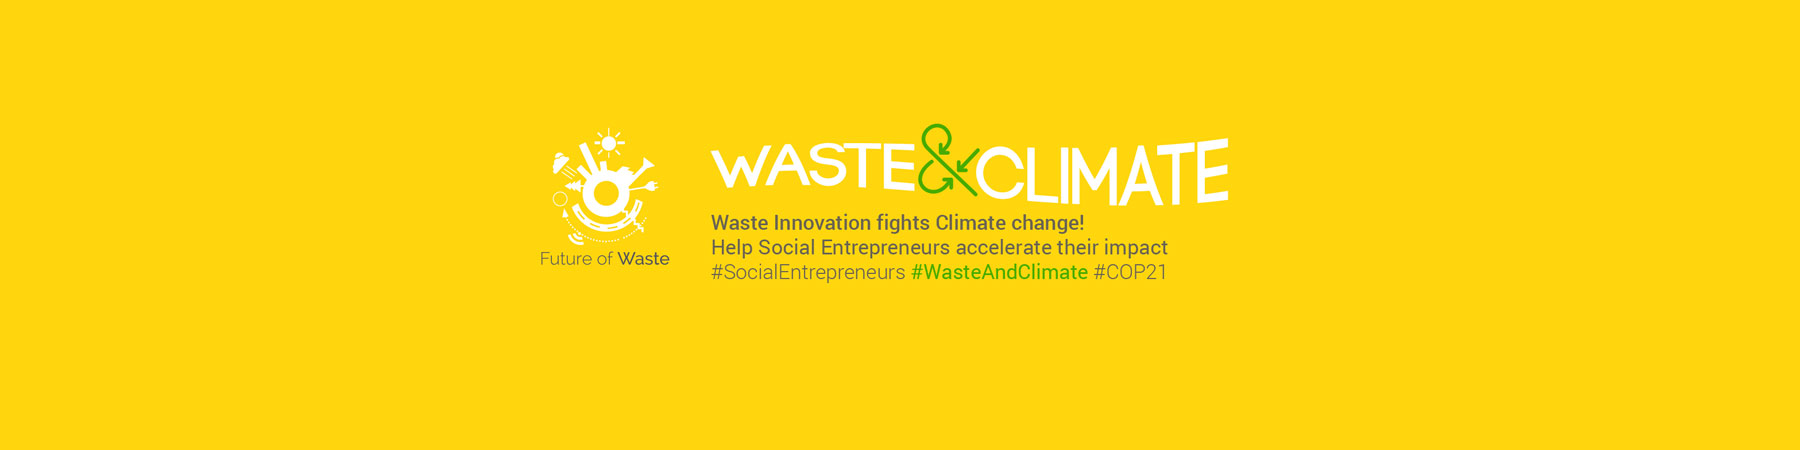 Poster   track   waste   climat